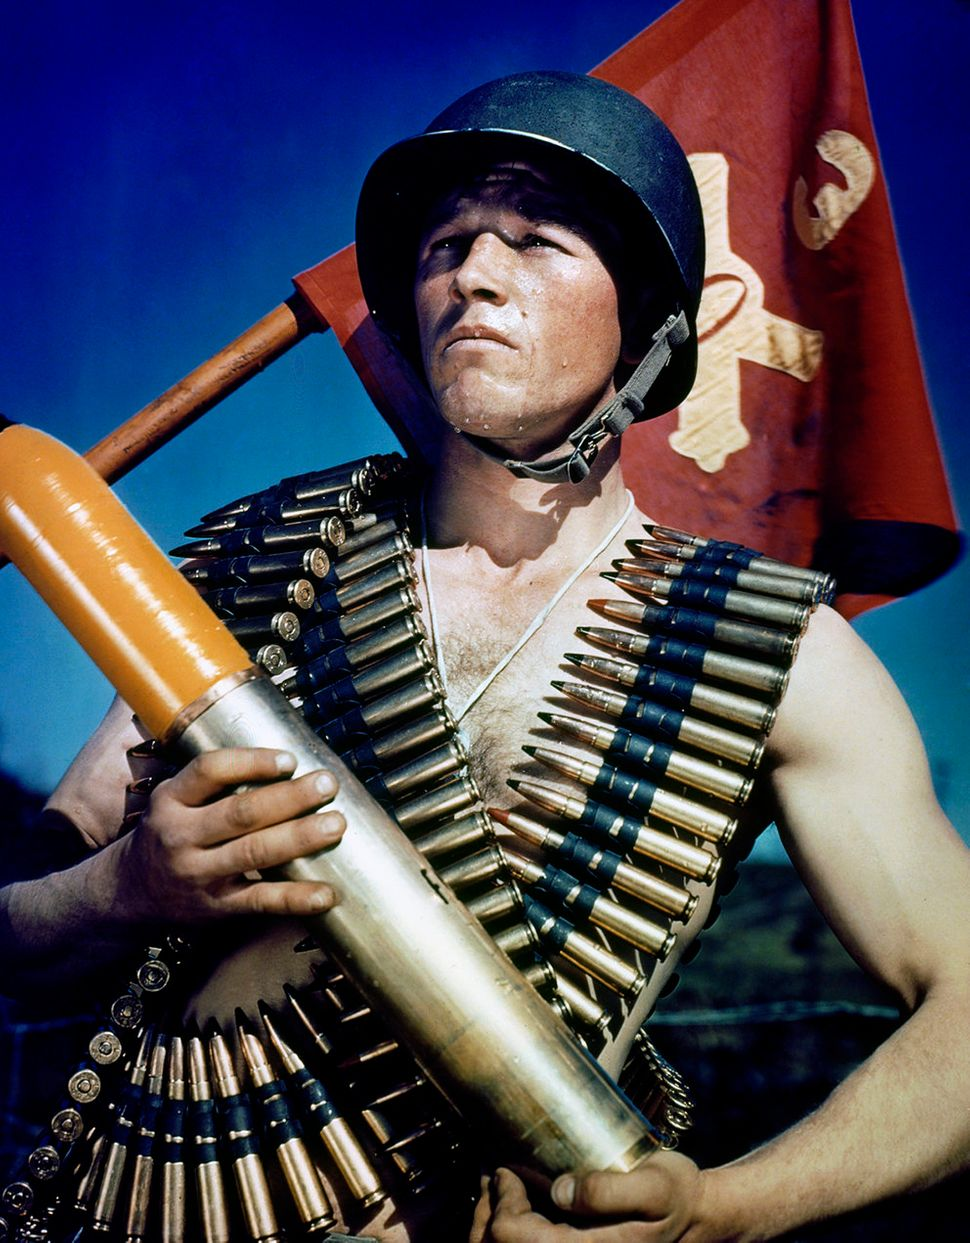 An American soldier poses, wrapped in ammunition and the artillery flag.